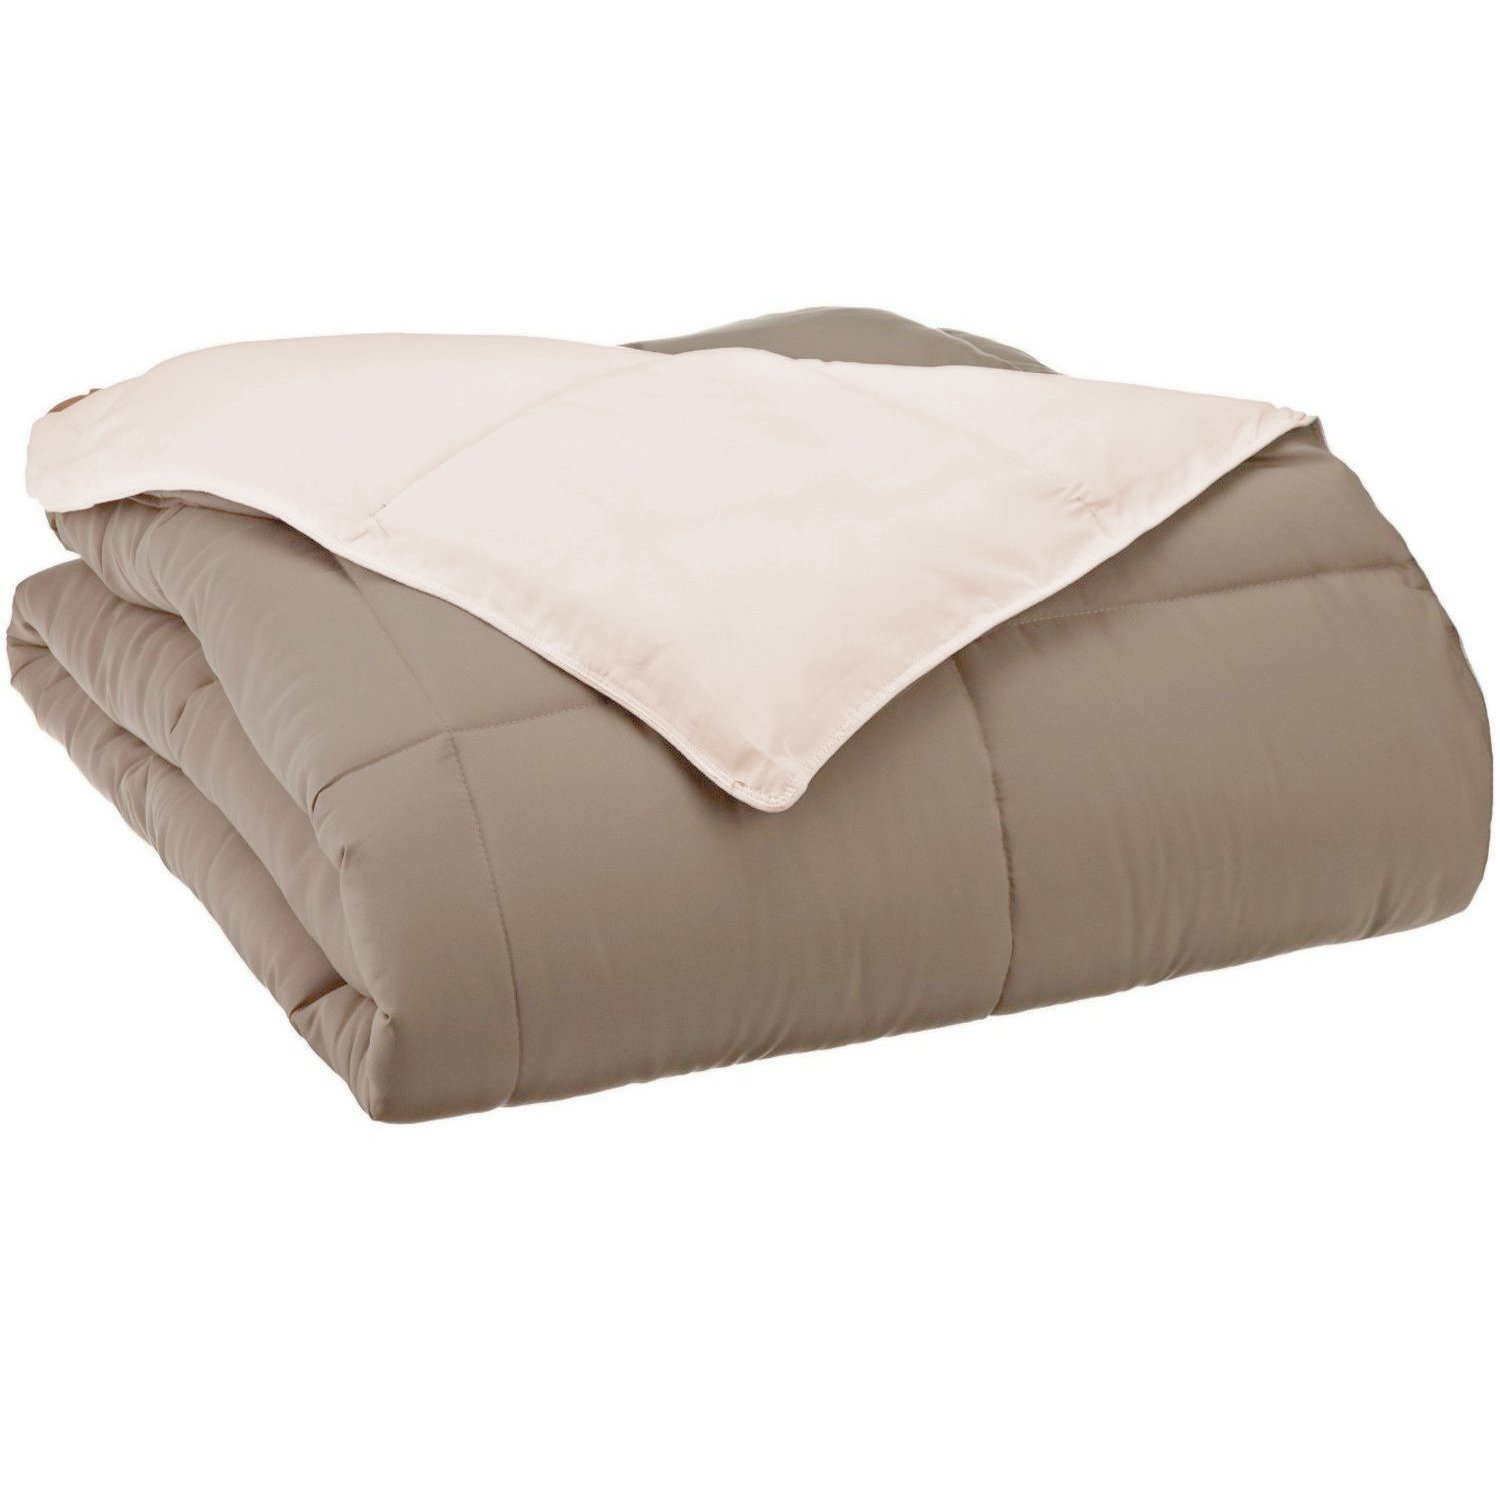 Superior Reversible Down Alternative Comforter, Medium Weight Bedding for All Season Use, Fluffy, Warm, Soft & Hypoallergenic - Twin/Twin XL Size, Ivory & Taupe